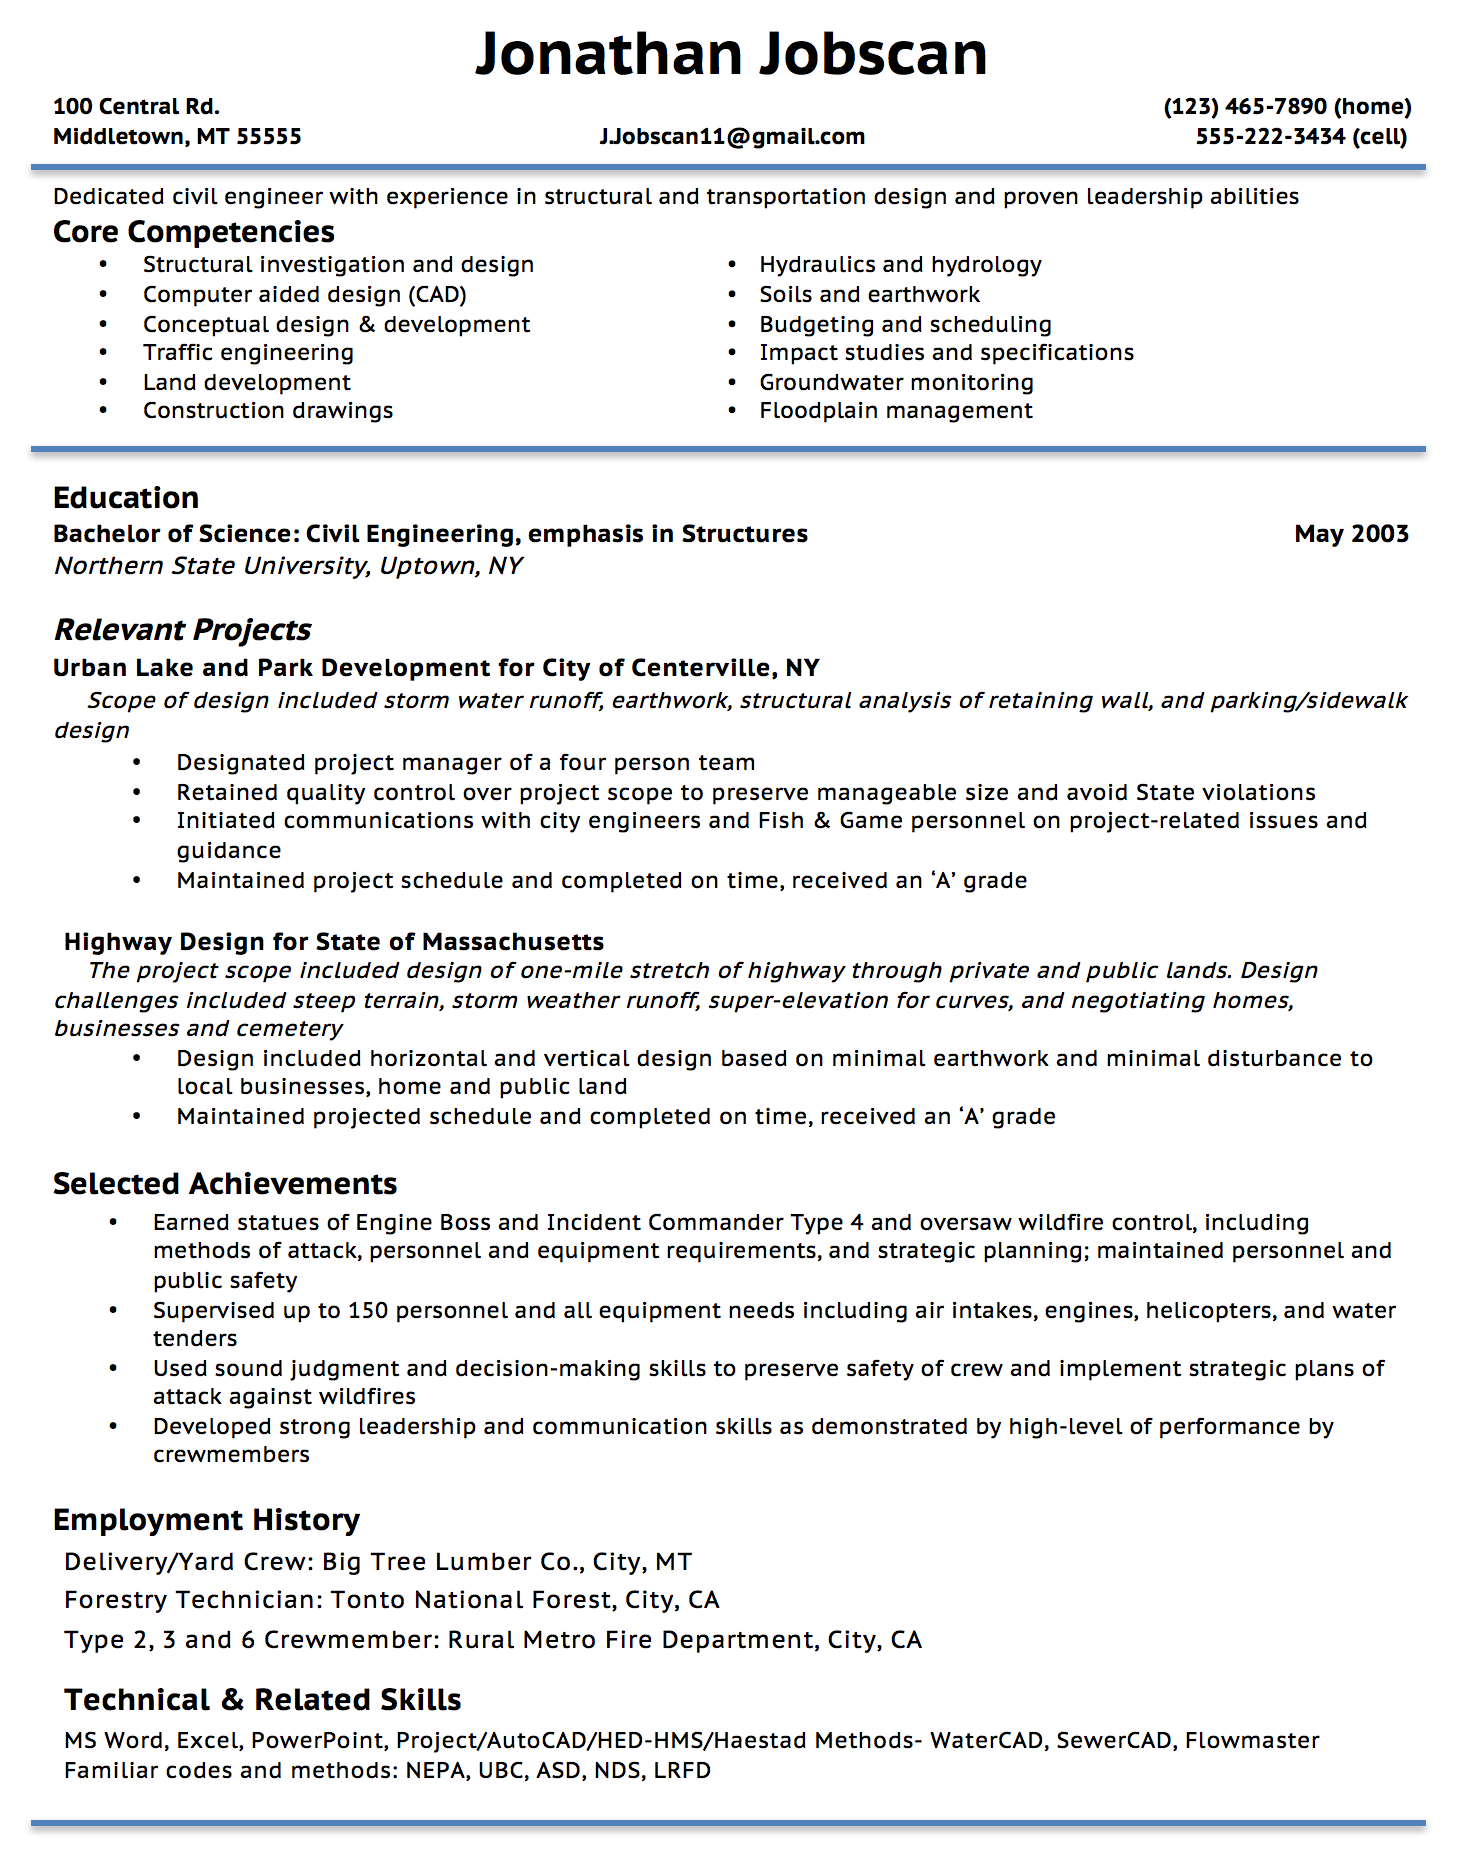 Opposenewapstandardsus  Nice Resume Writing Guide  Jobscan With Entrancing Example Of A Functional Resume Format With Charming Resume Expected Graduation Date Also How To Write An Acting Resume In Addition How To Include References In Resume And Resume Builde As Well As Example Resume Objective Additionally Professional Nursing Resume From Jobscanco With Opposenewapstandardsus  Entrancing Resume Writing Guide  Jobscan With Charming Example Of A Functional Resume Format And Nice Resume Expected Graduation Date Also How To Write An Acting Resume In Addition How To Include References In Resume From Jobscanco